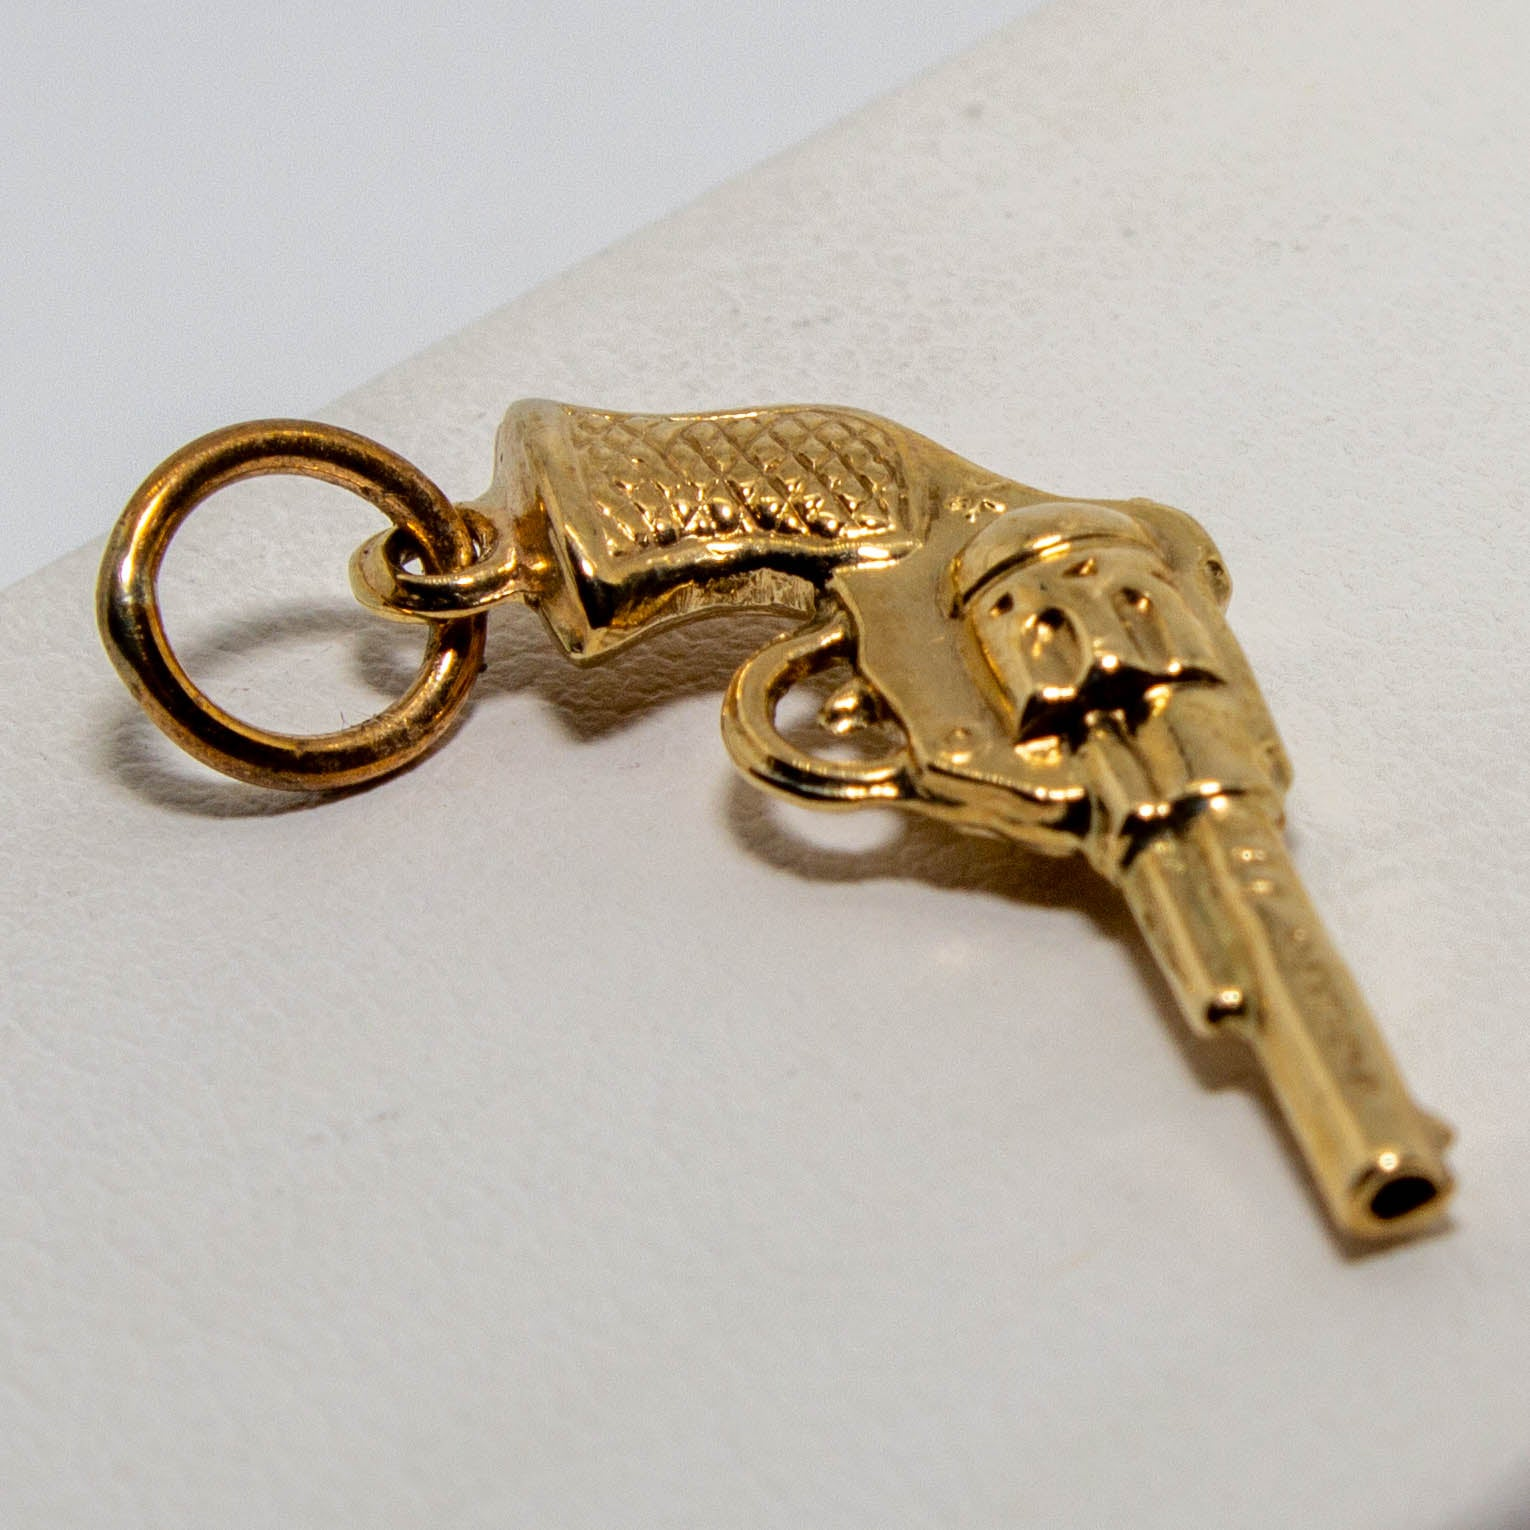 9ct Yellow Gold Revolver Charm